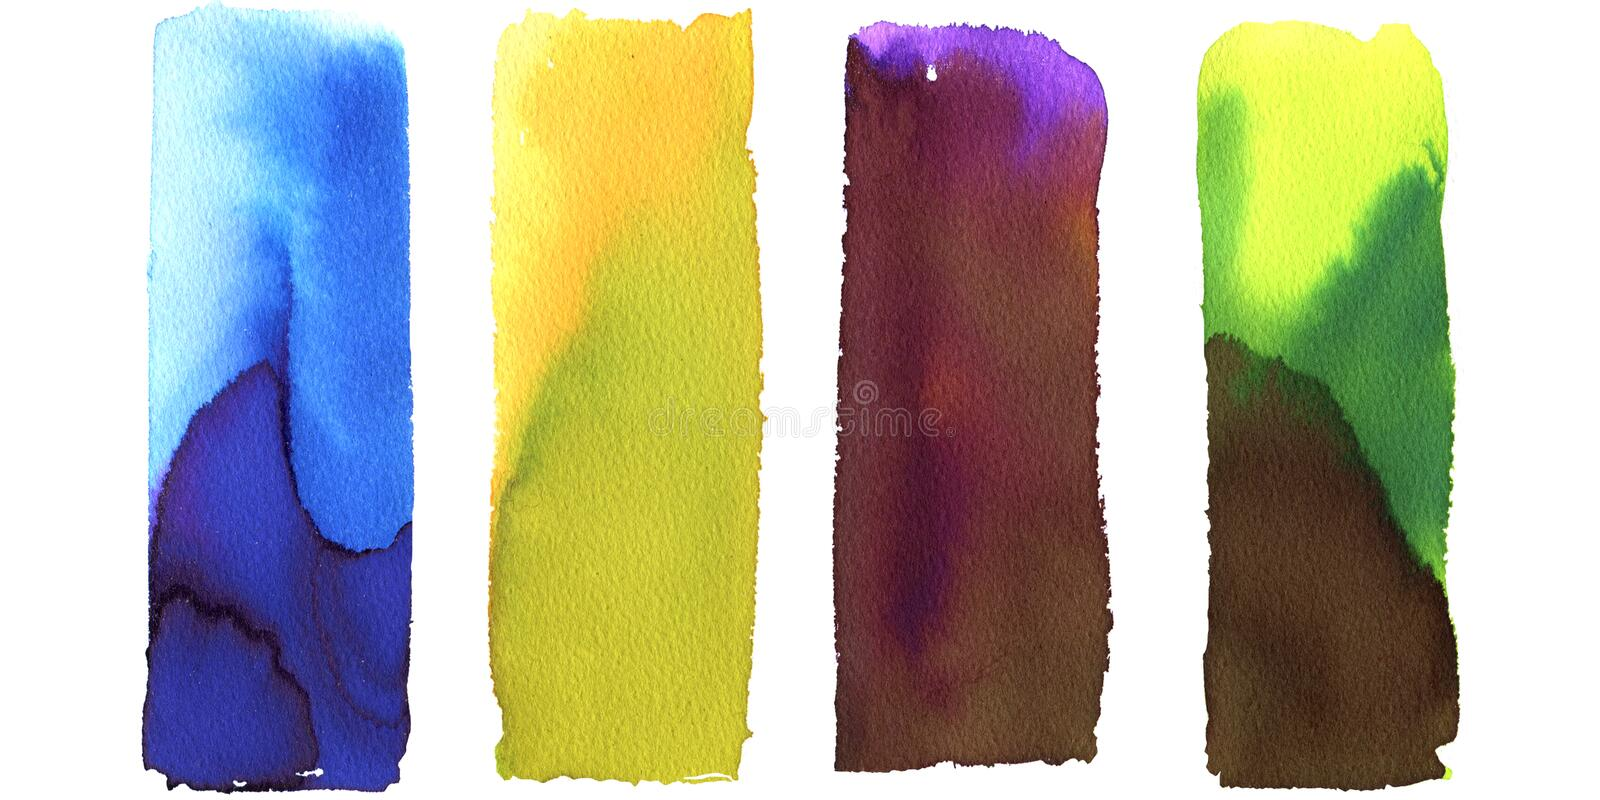 Set of art painted abstract backgrounds, gradient rectangles, blue, yellow, green, violet. Multicolor design, banner stock illustration